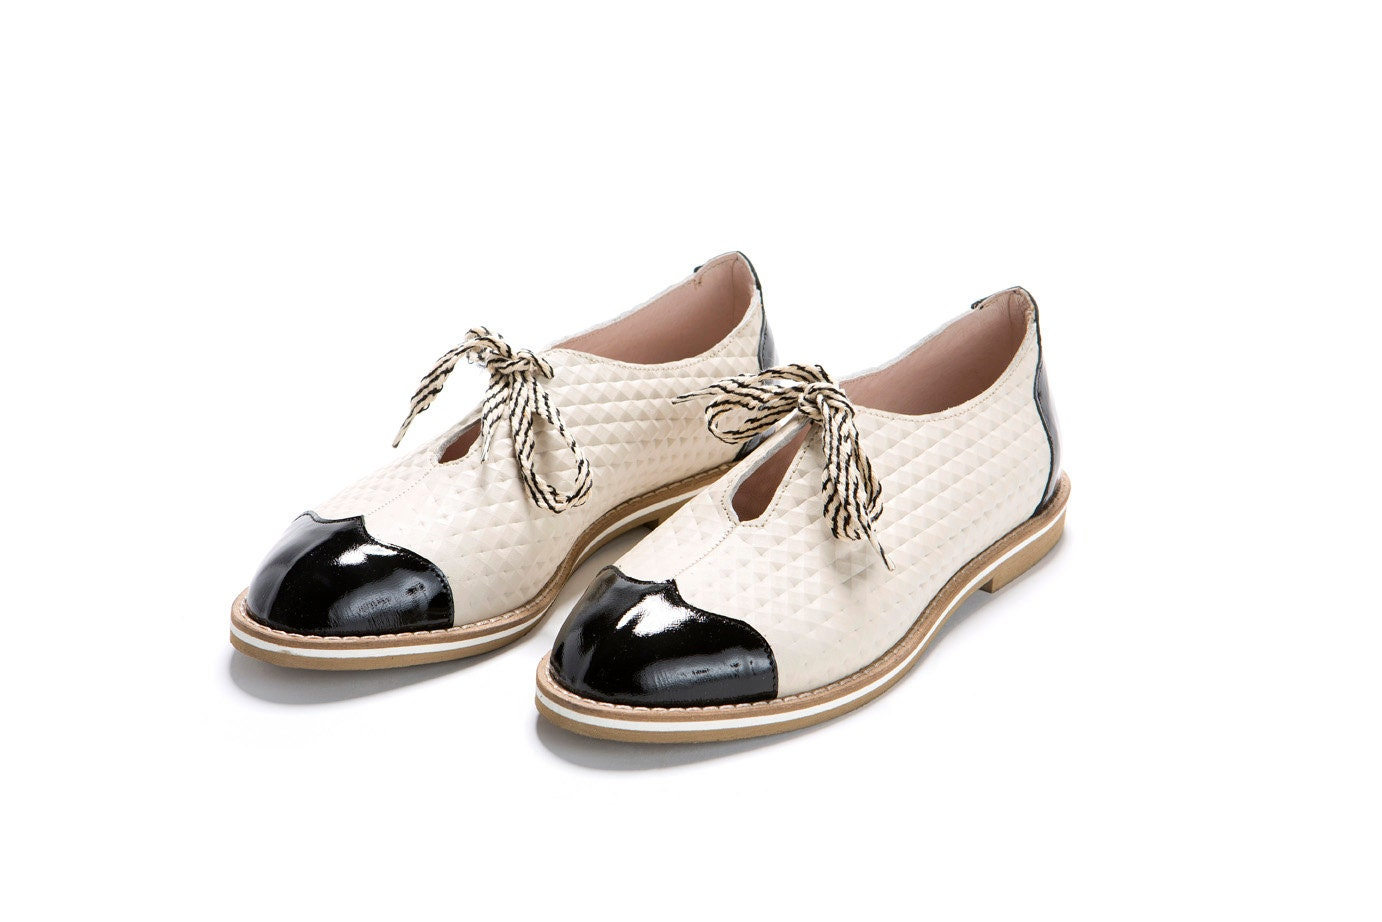 oxford shoes black white shoes oxford style flat